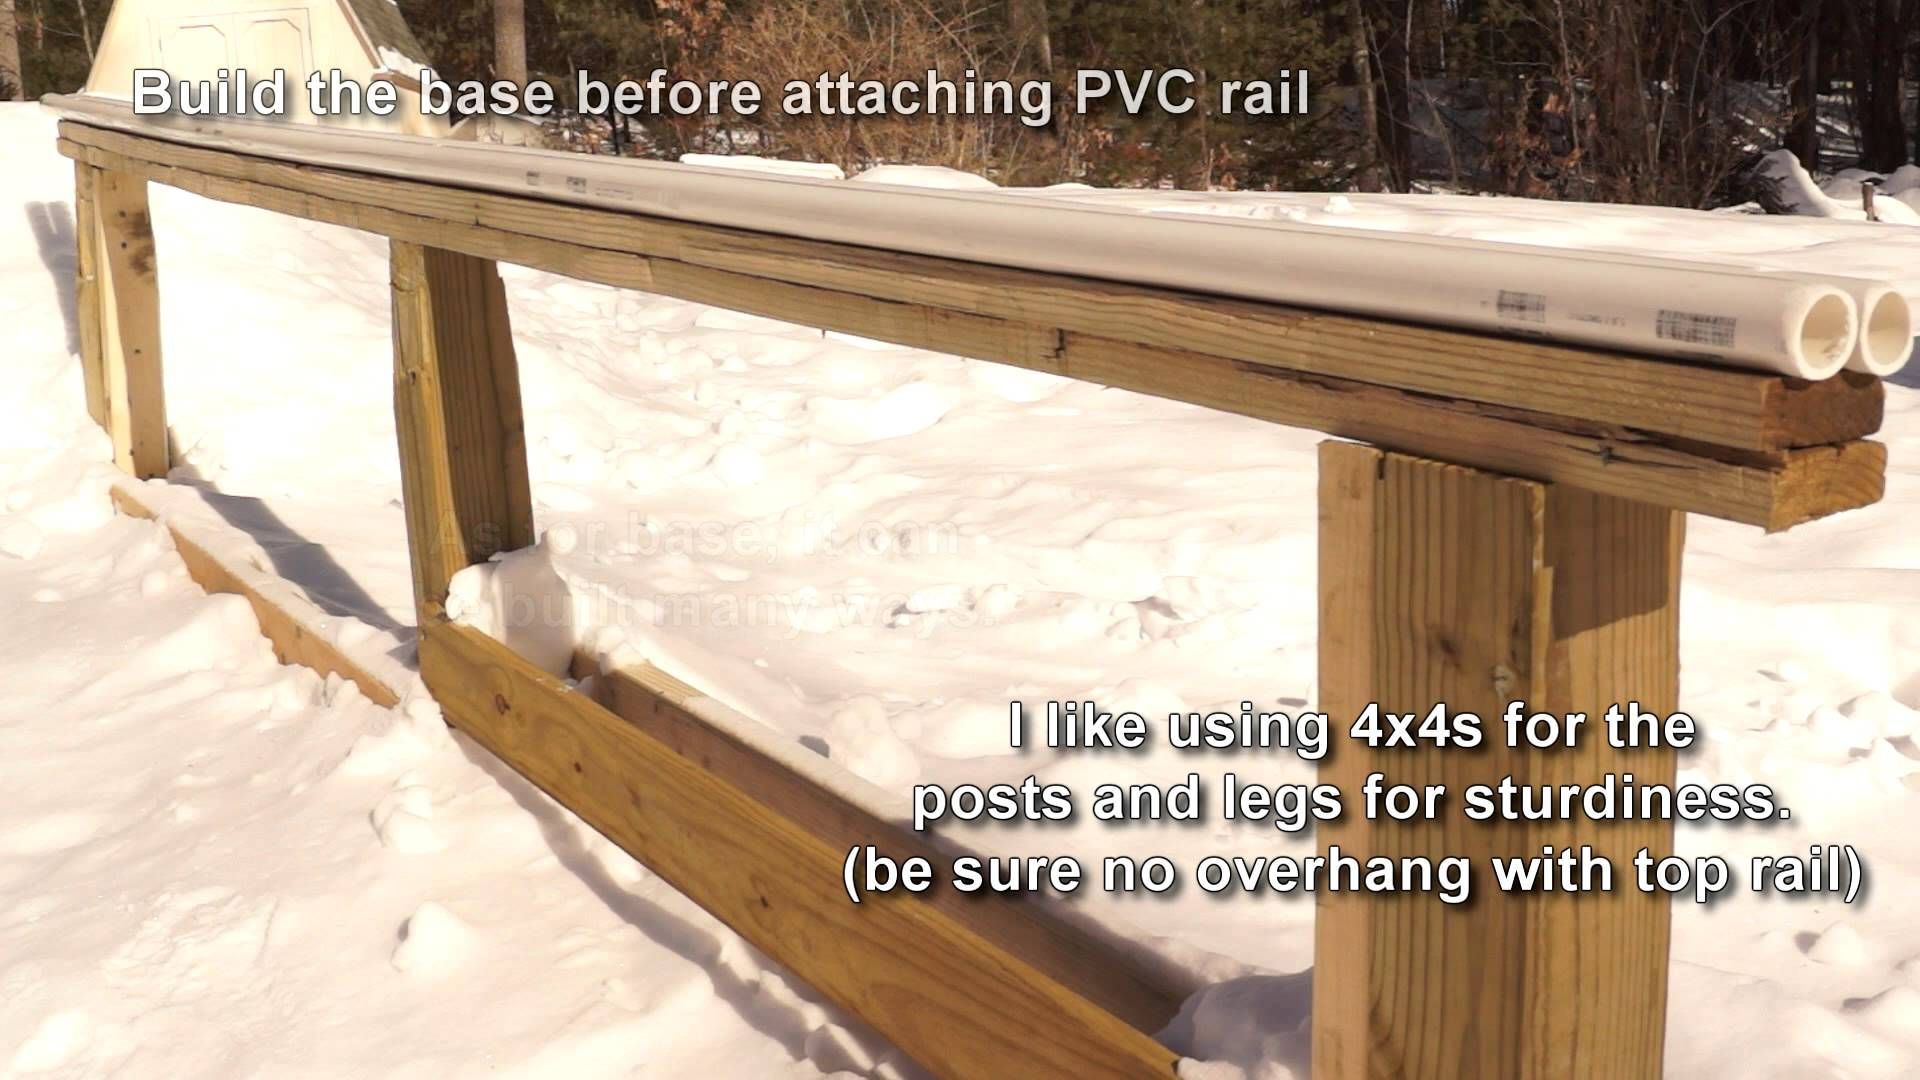 Diy Pvc Terrain Park Rail Easy To Make And So Much Fun To Use In The Backyard To Practice Your Rail Slides Before Taking It To Ski Park Pvc Railing Backyard